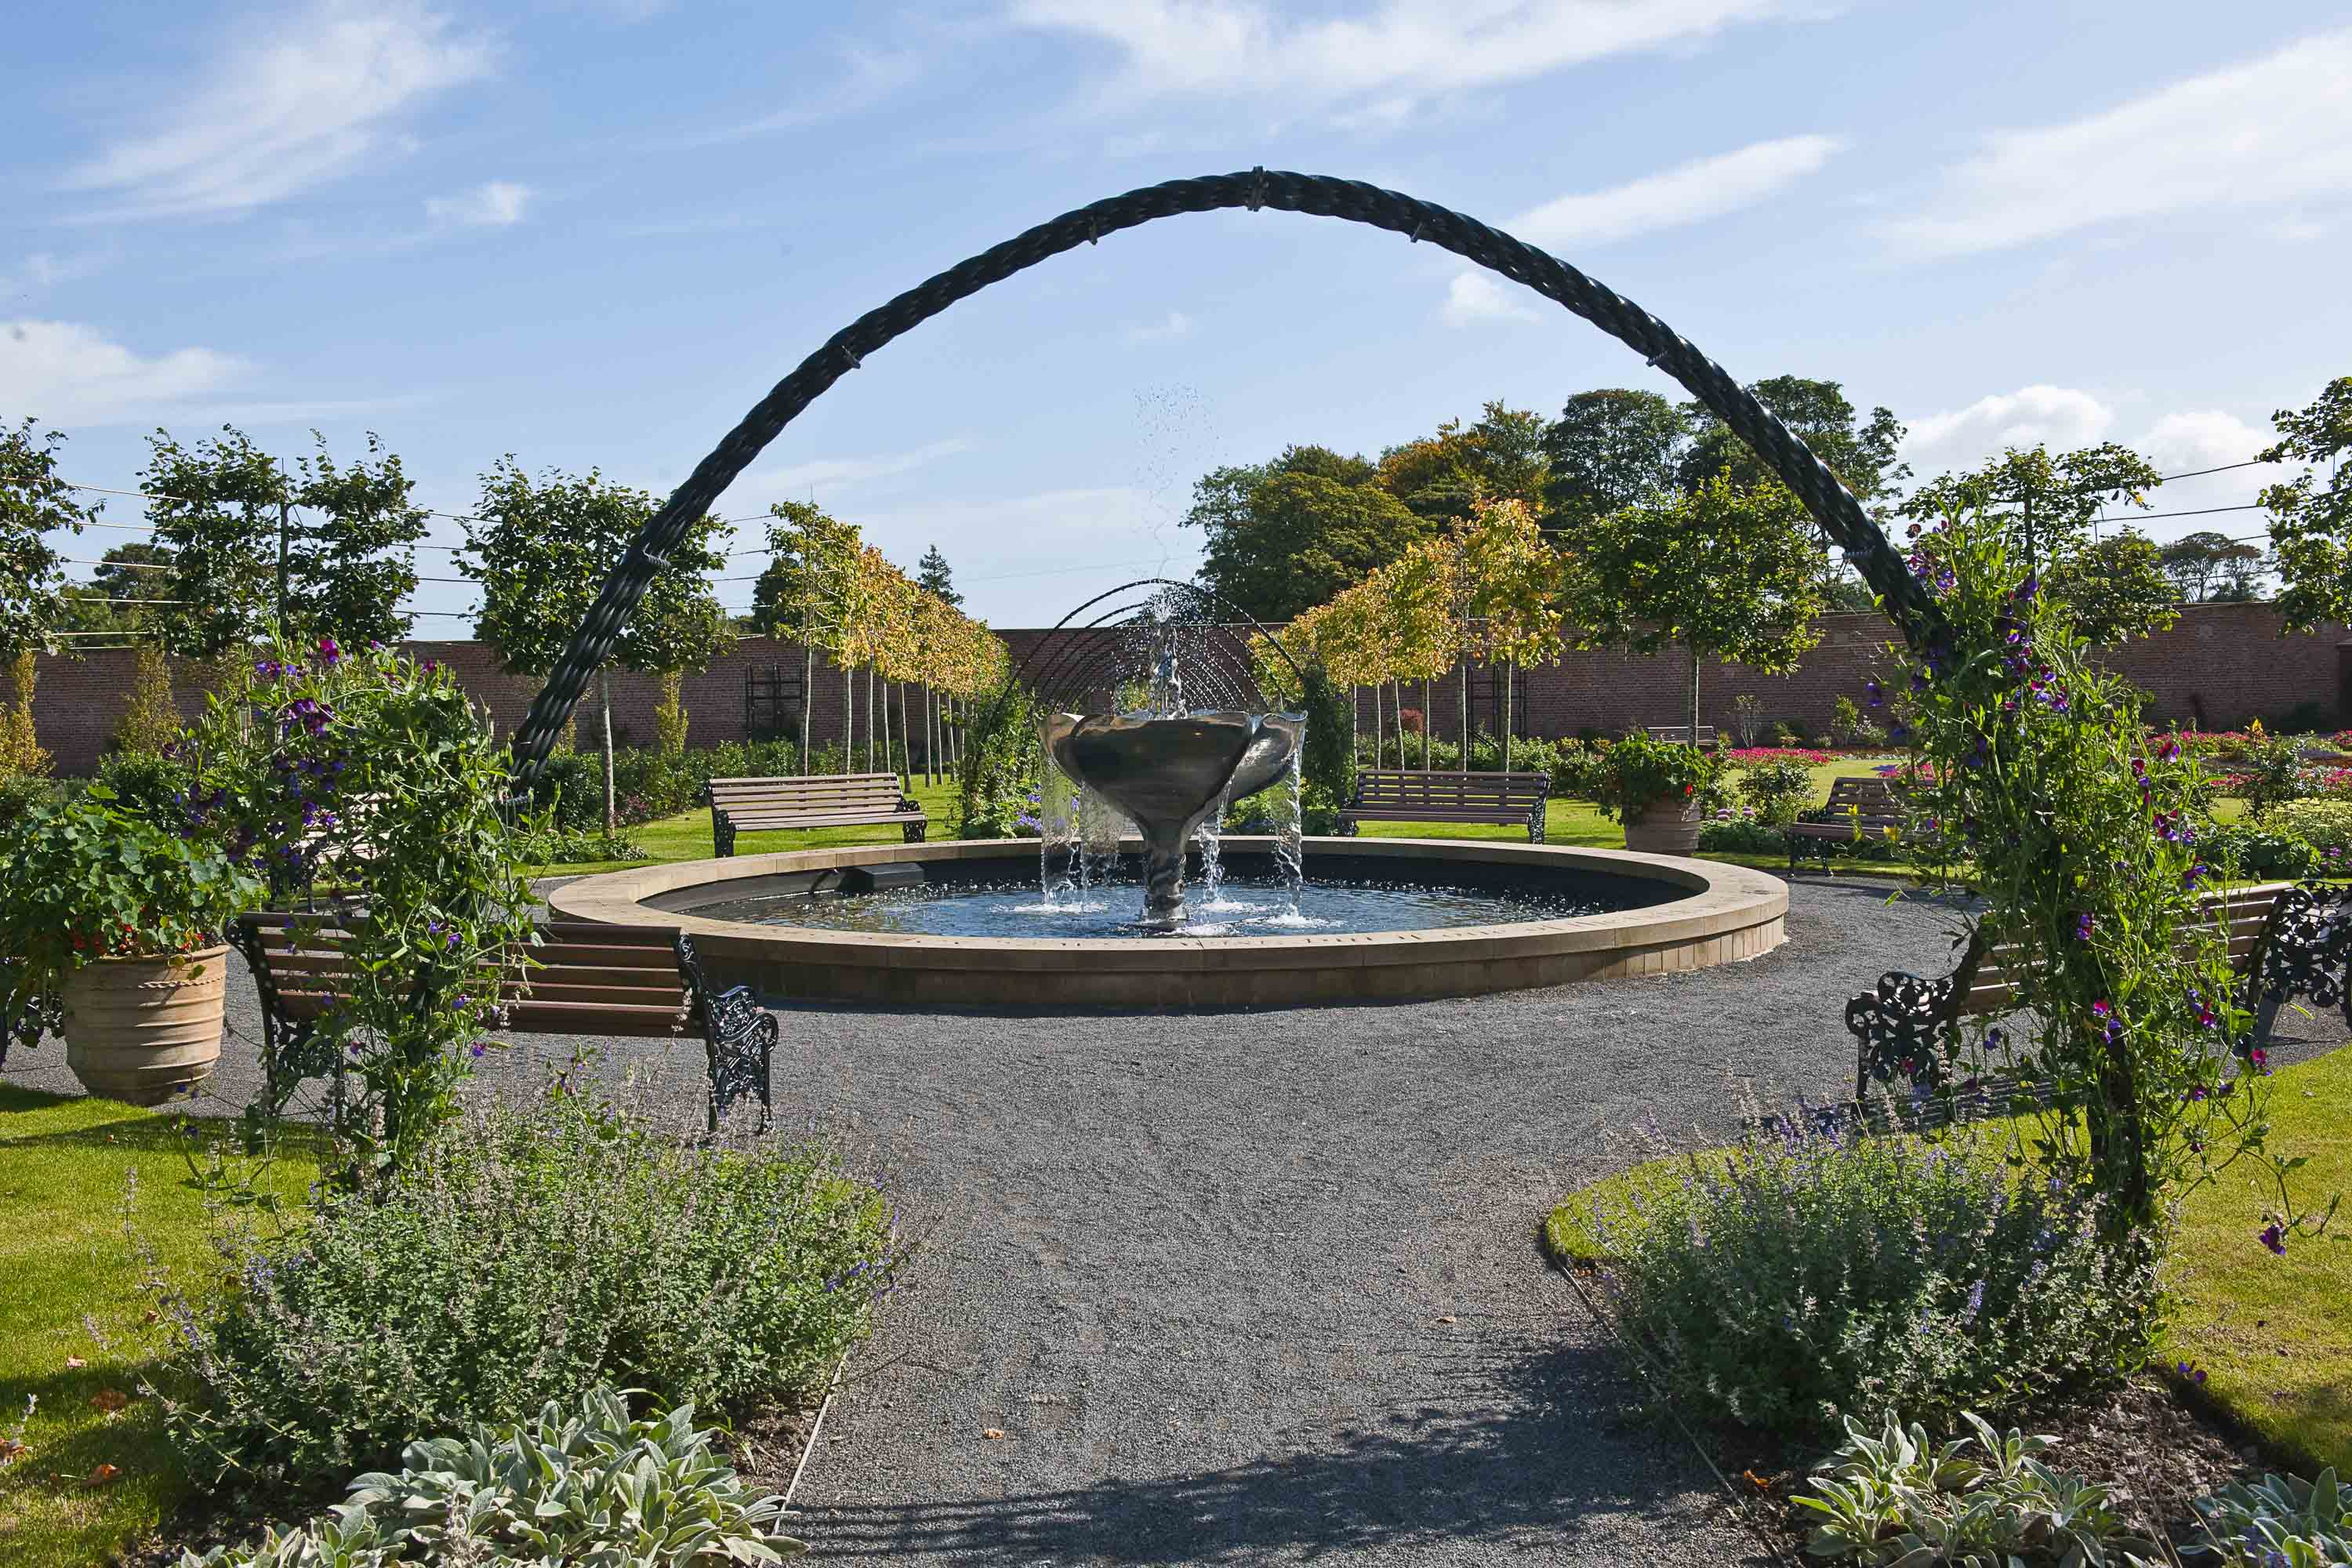 LEAF THE CITY BEHIND AND VISIT NI's STUNNING GARDENS